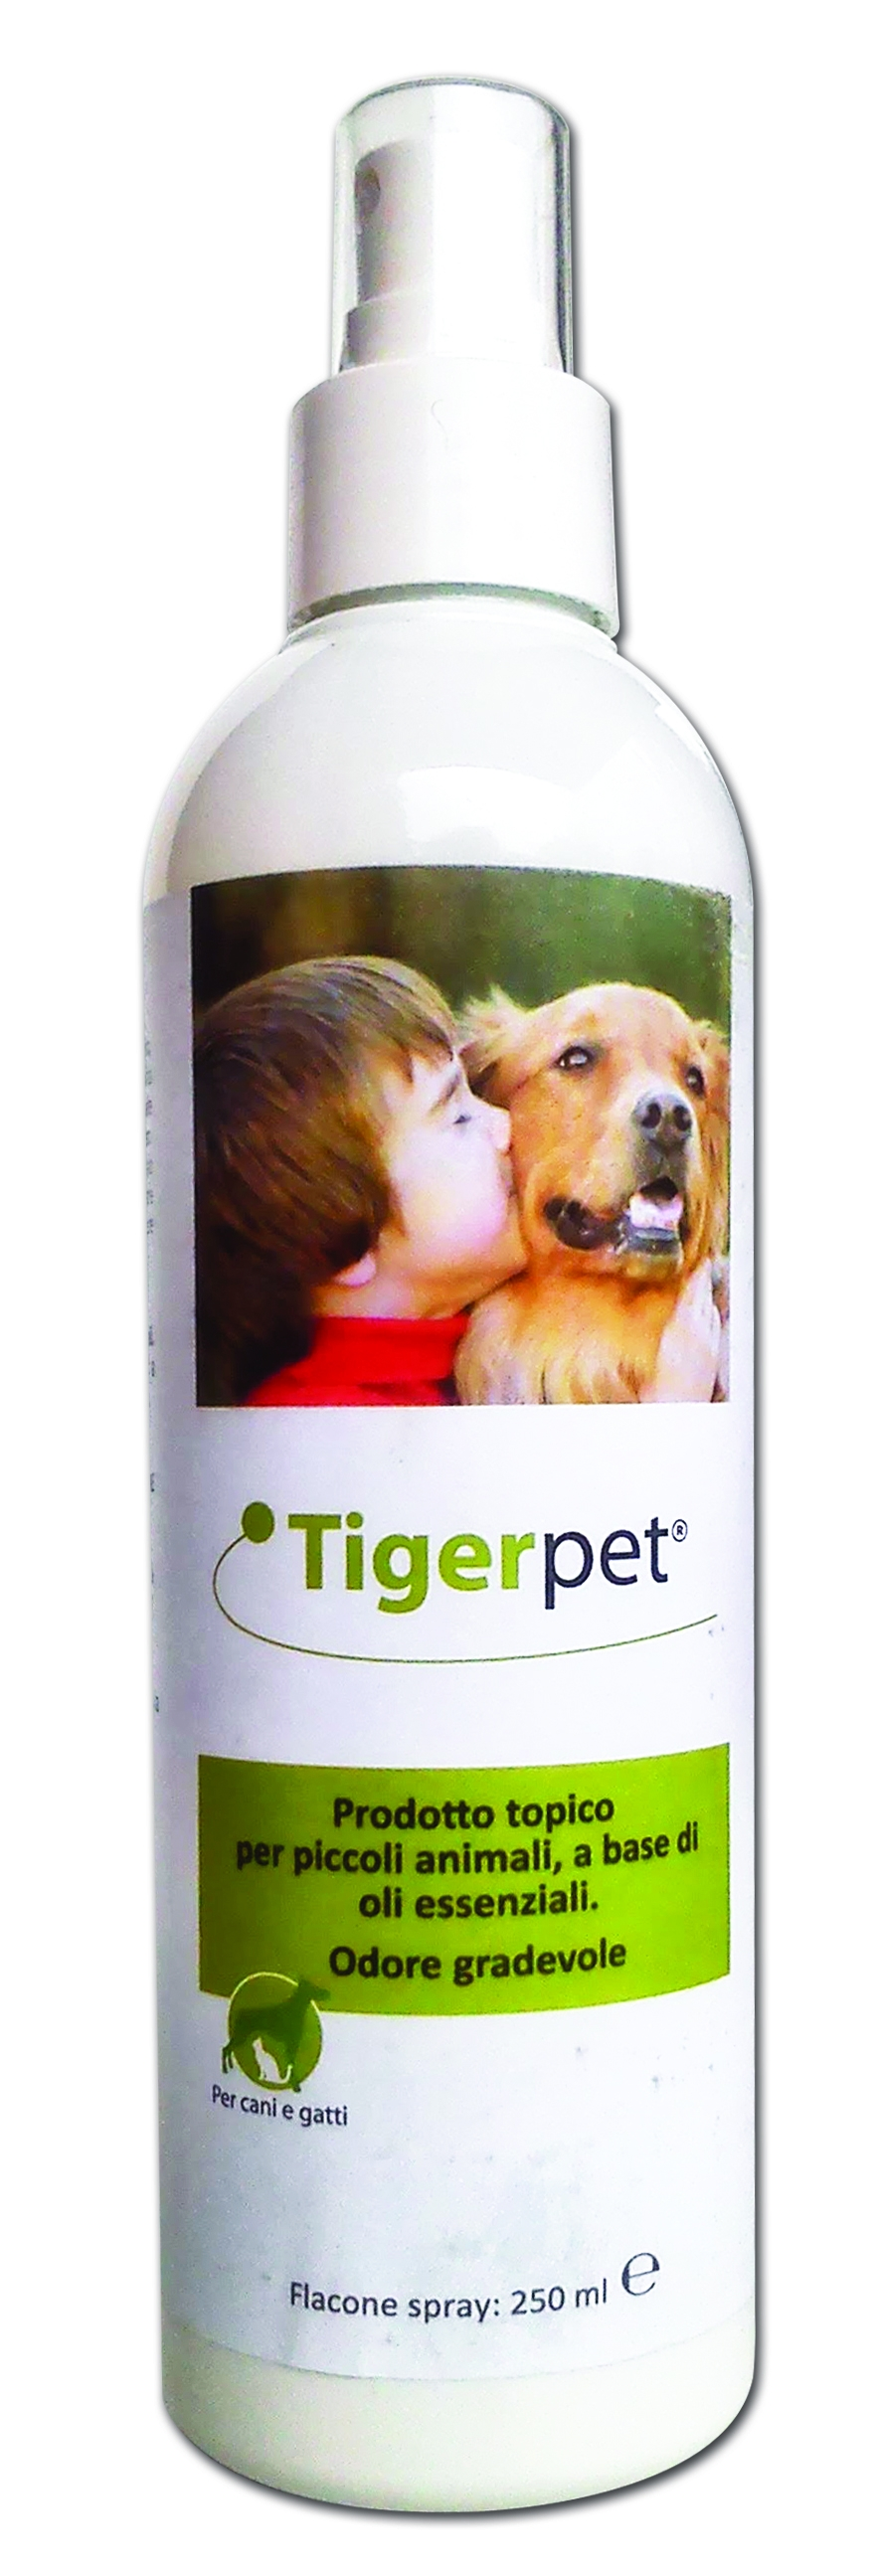 Tigerpet Spray da 250 ml